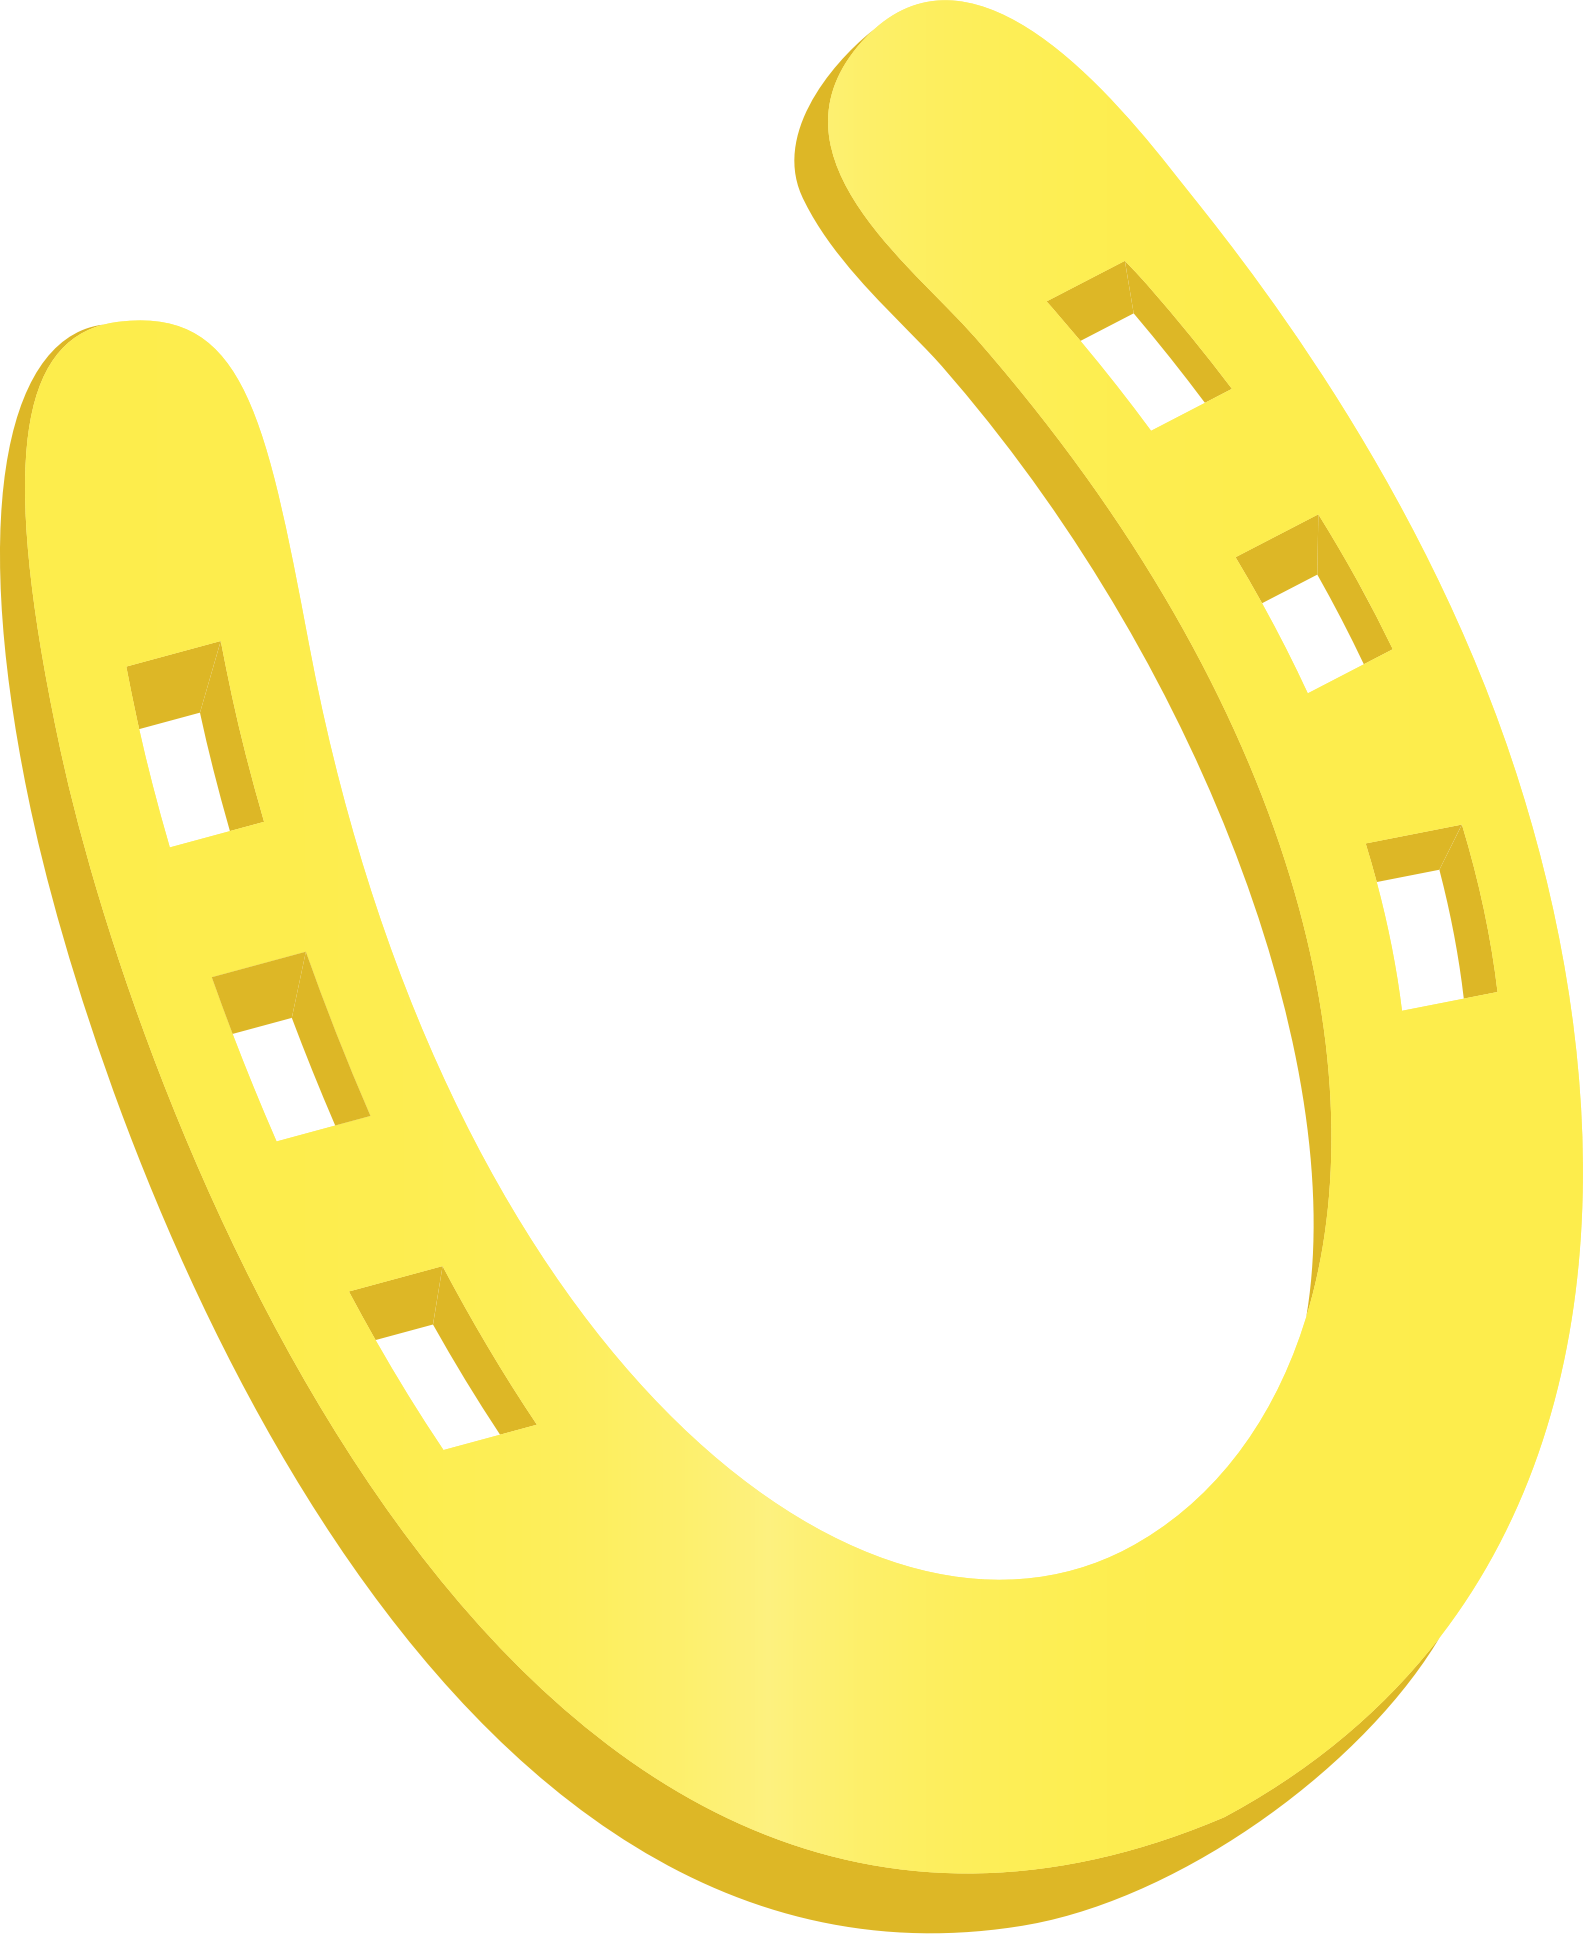 Horseshoe icon clipart images gallery for free download.